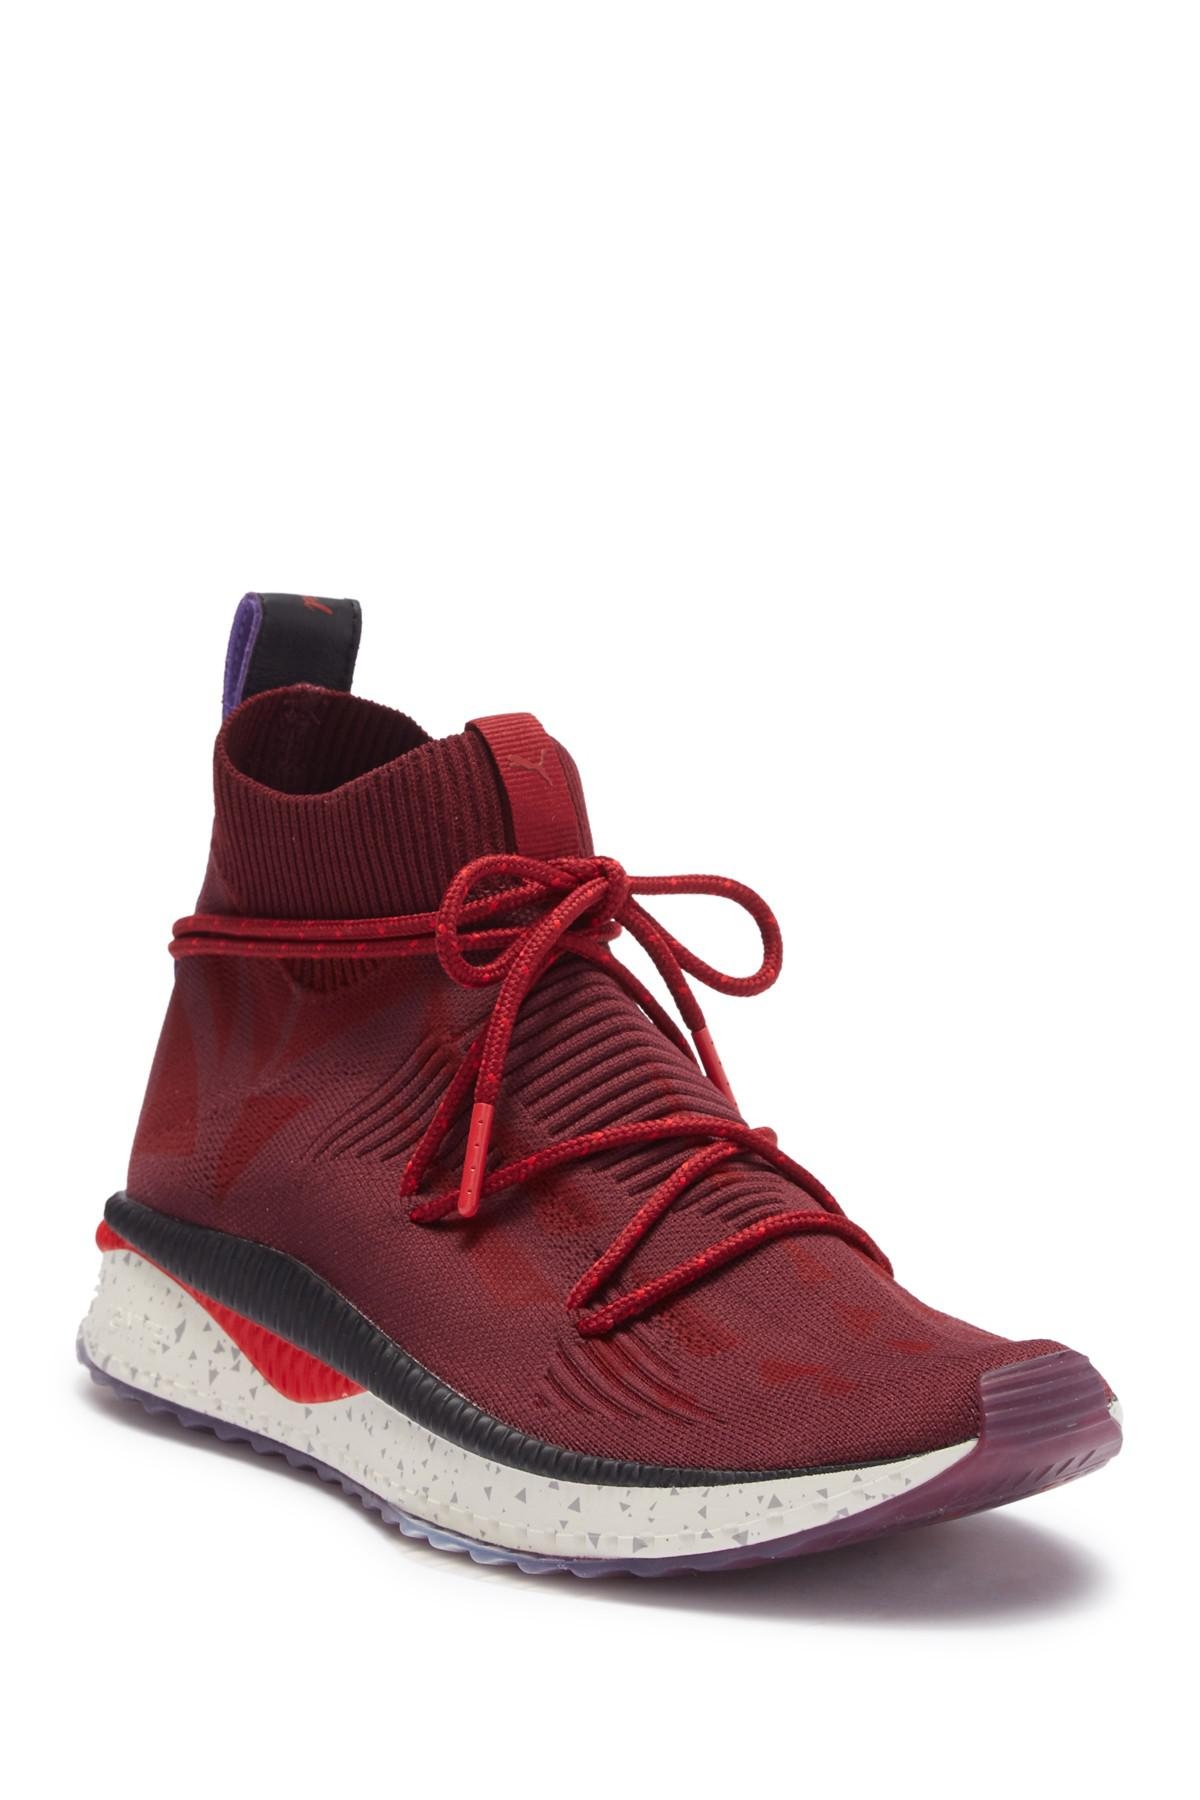 Lyst - PUMA X Naturel Tsugi Evoknit Sock Sneaker in Red for Men 6a6ff0ab5